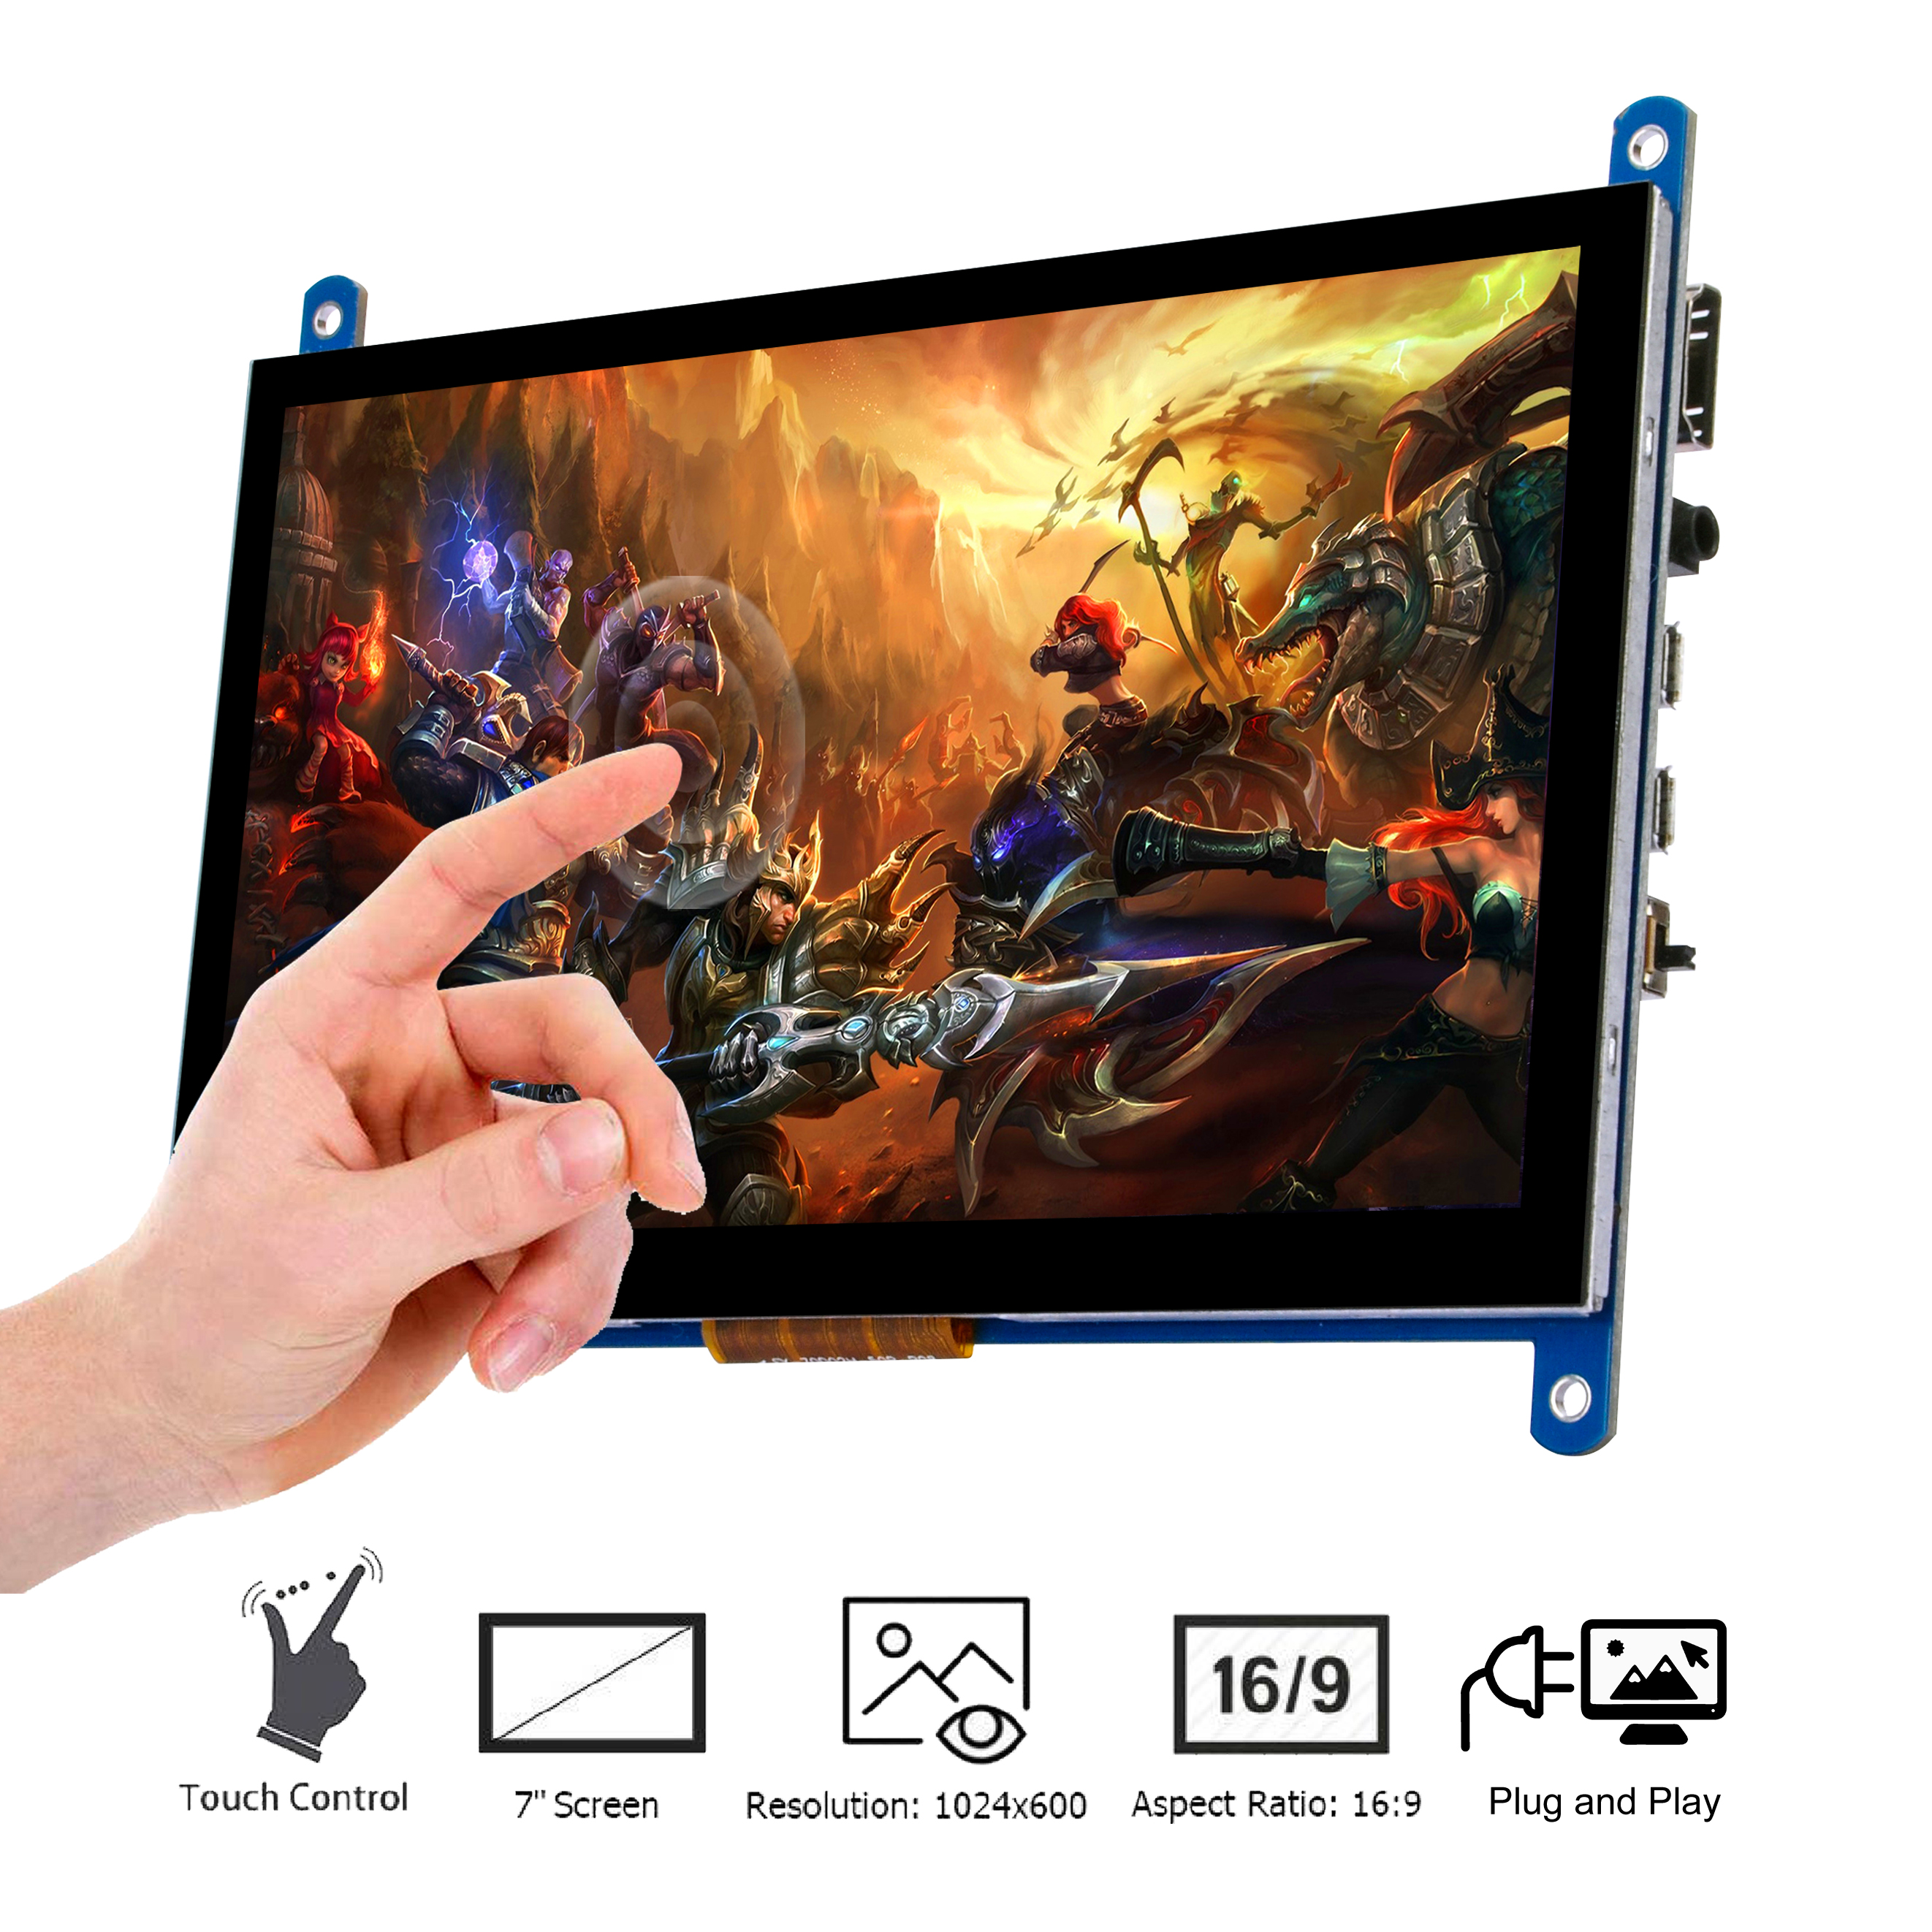 7 Inch Touch Screen Monitor Display HD 1024x600 Driver Free Plug and Play Capacitive Touch for Raspberry Pi,Computer,TV Box,DVR, image